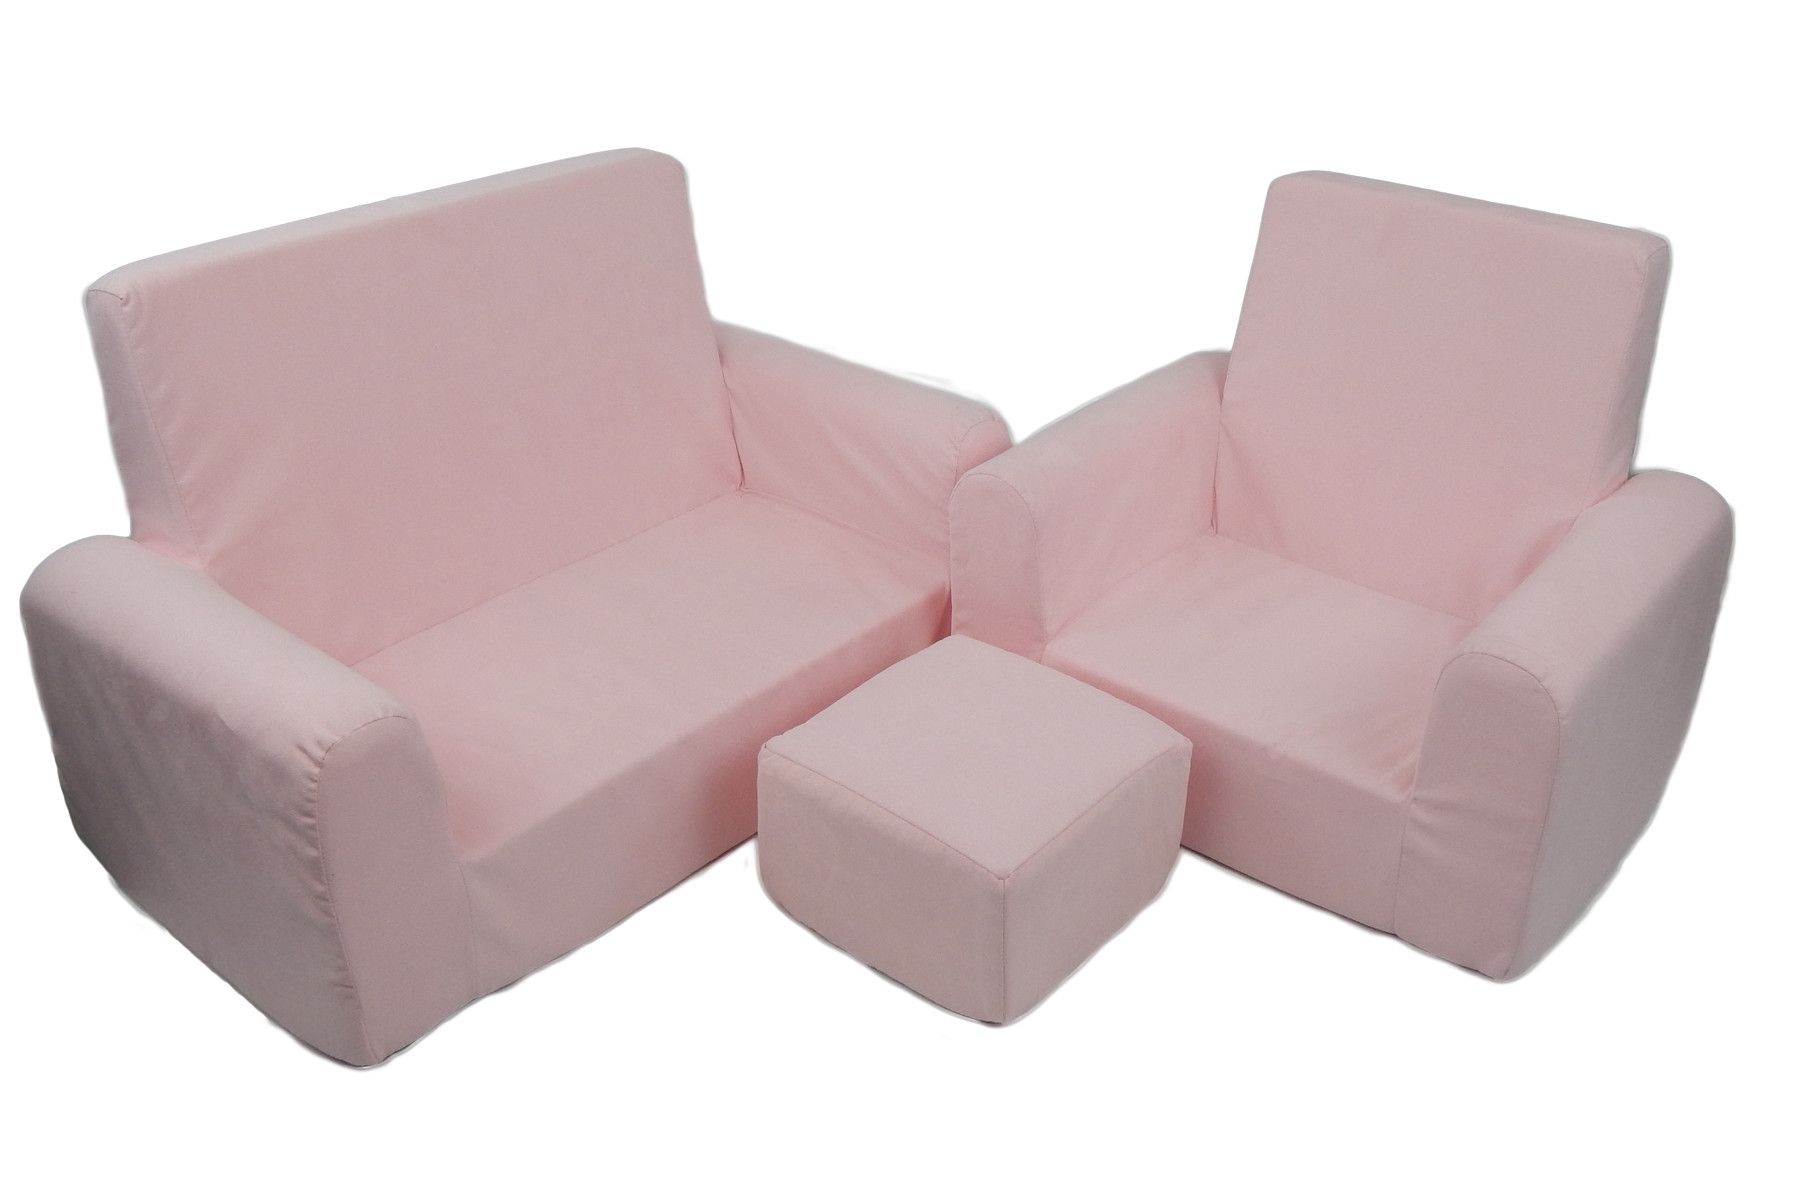 3 Piece Kids Sofa Chair And Ottoman Set Products Chair Ottoman